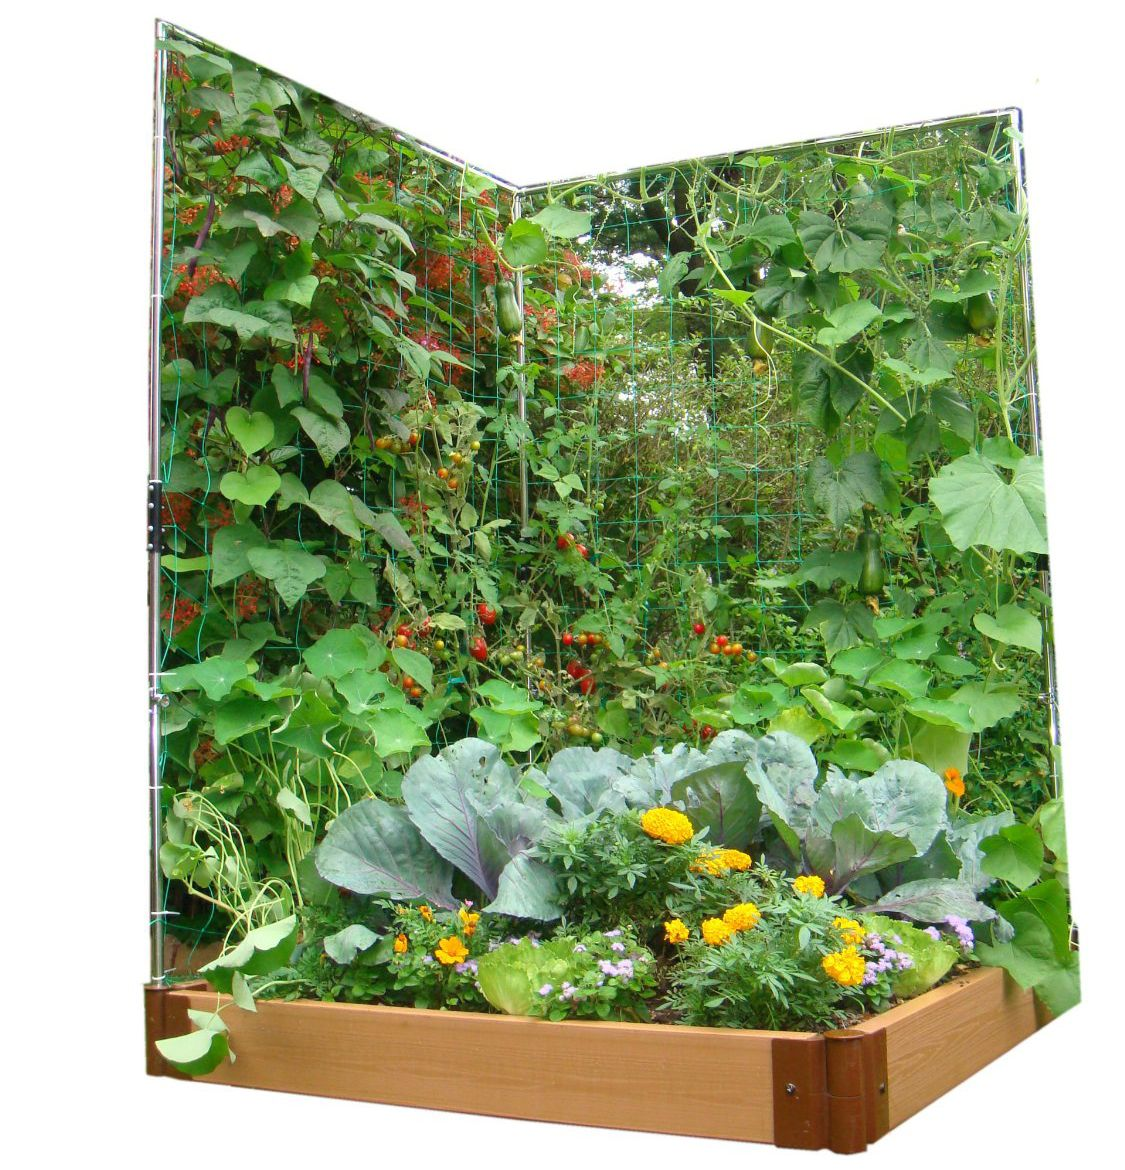 Simple Vegetable Garden Ideas For Your Living: 9+ Vegetable Gardens, Using Vertical Gardening Ideas